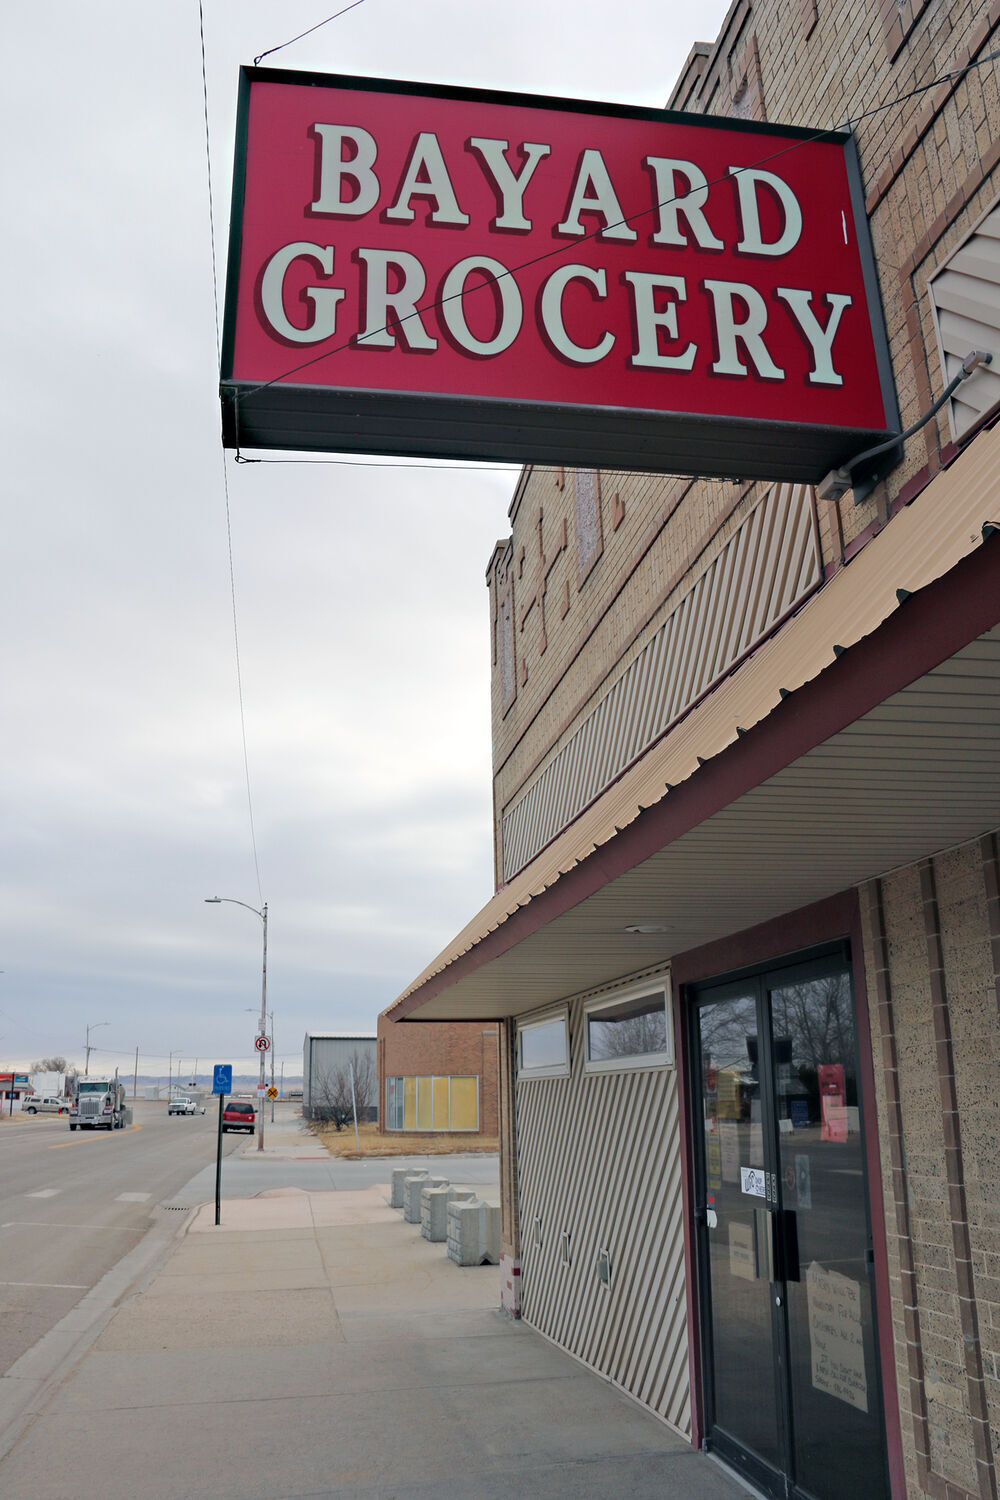 As Bayard Grocery gets set to close, TCD looks to bring in a community-owned store